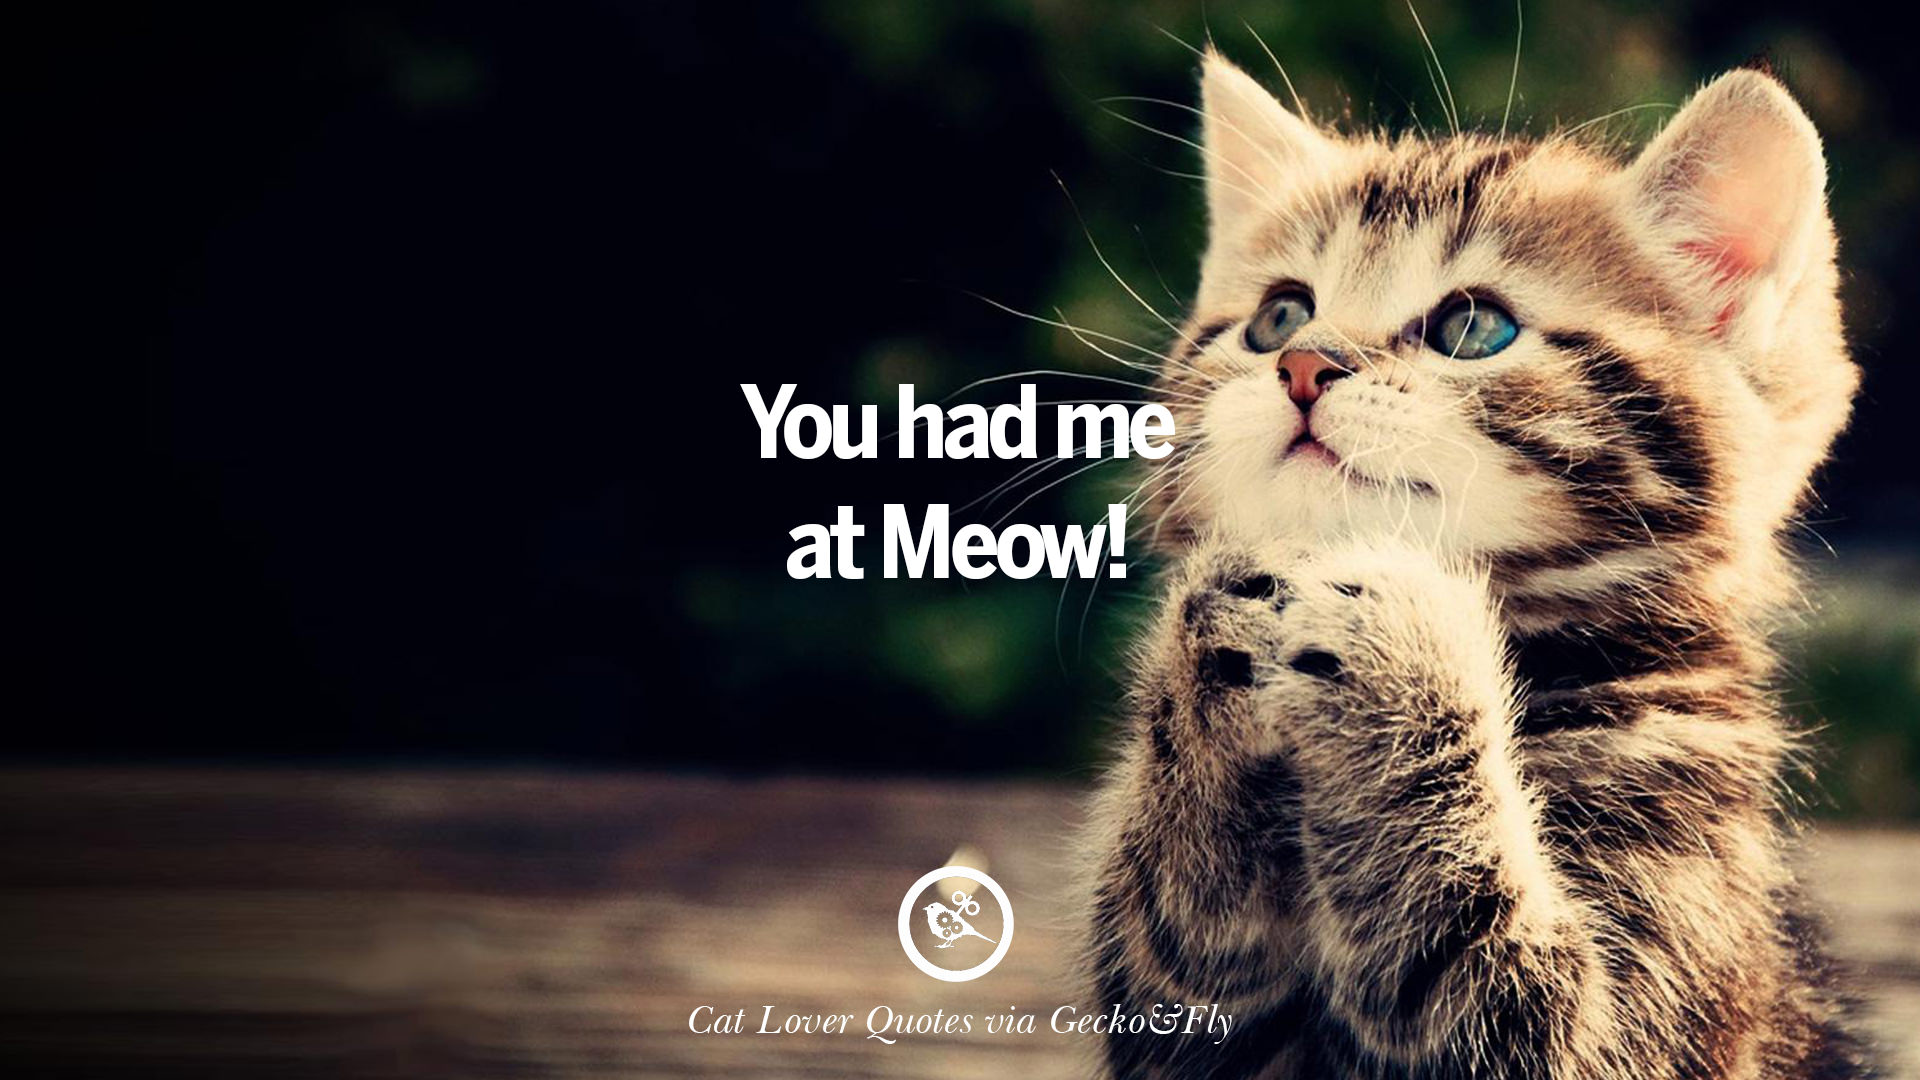 25 cute cat images with quotes for crazy cat ladies